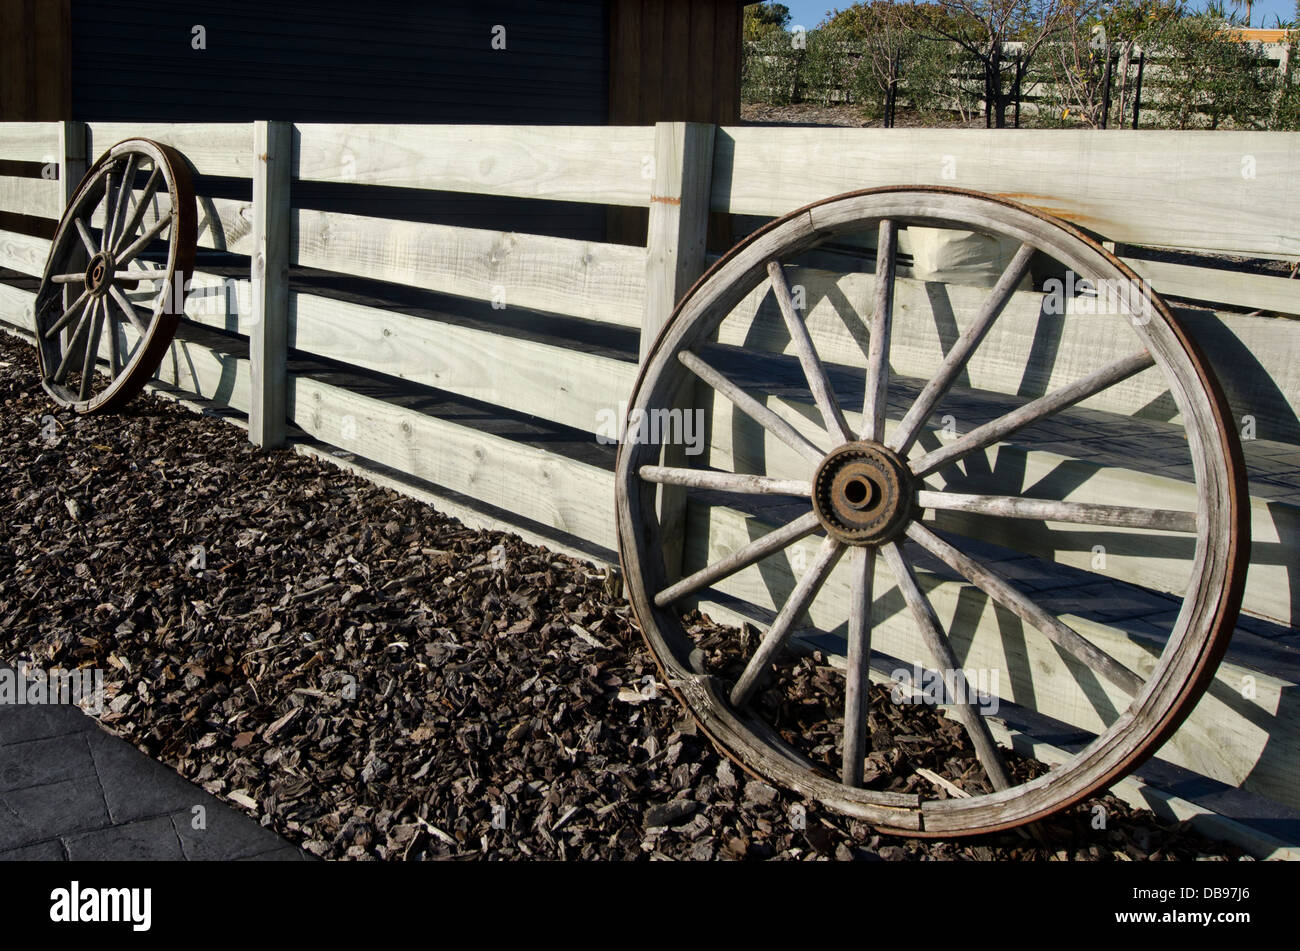 Vintage carriage wheels on lean on a farm fence. - Stock Image